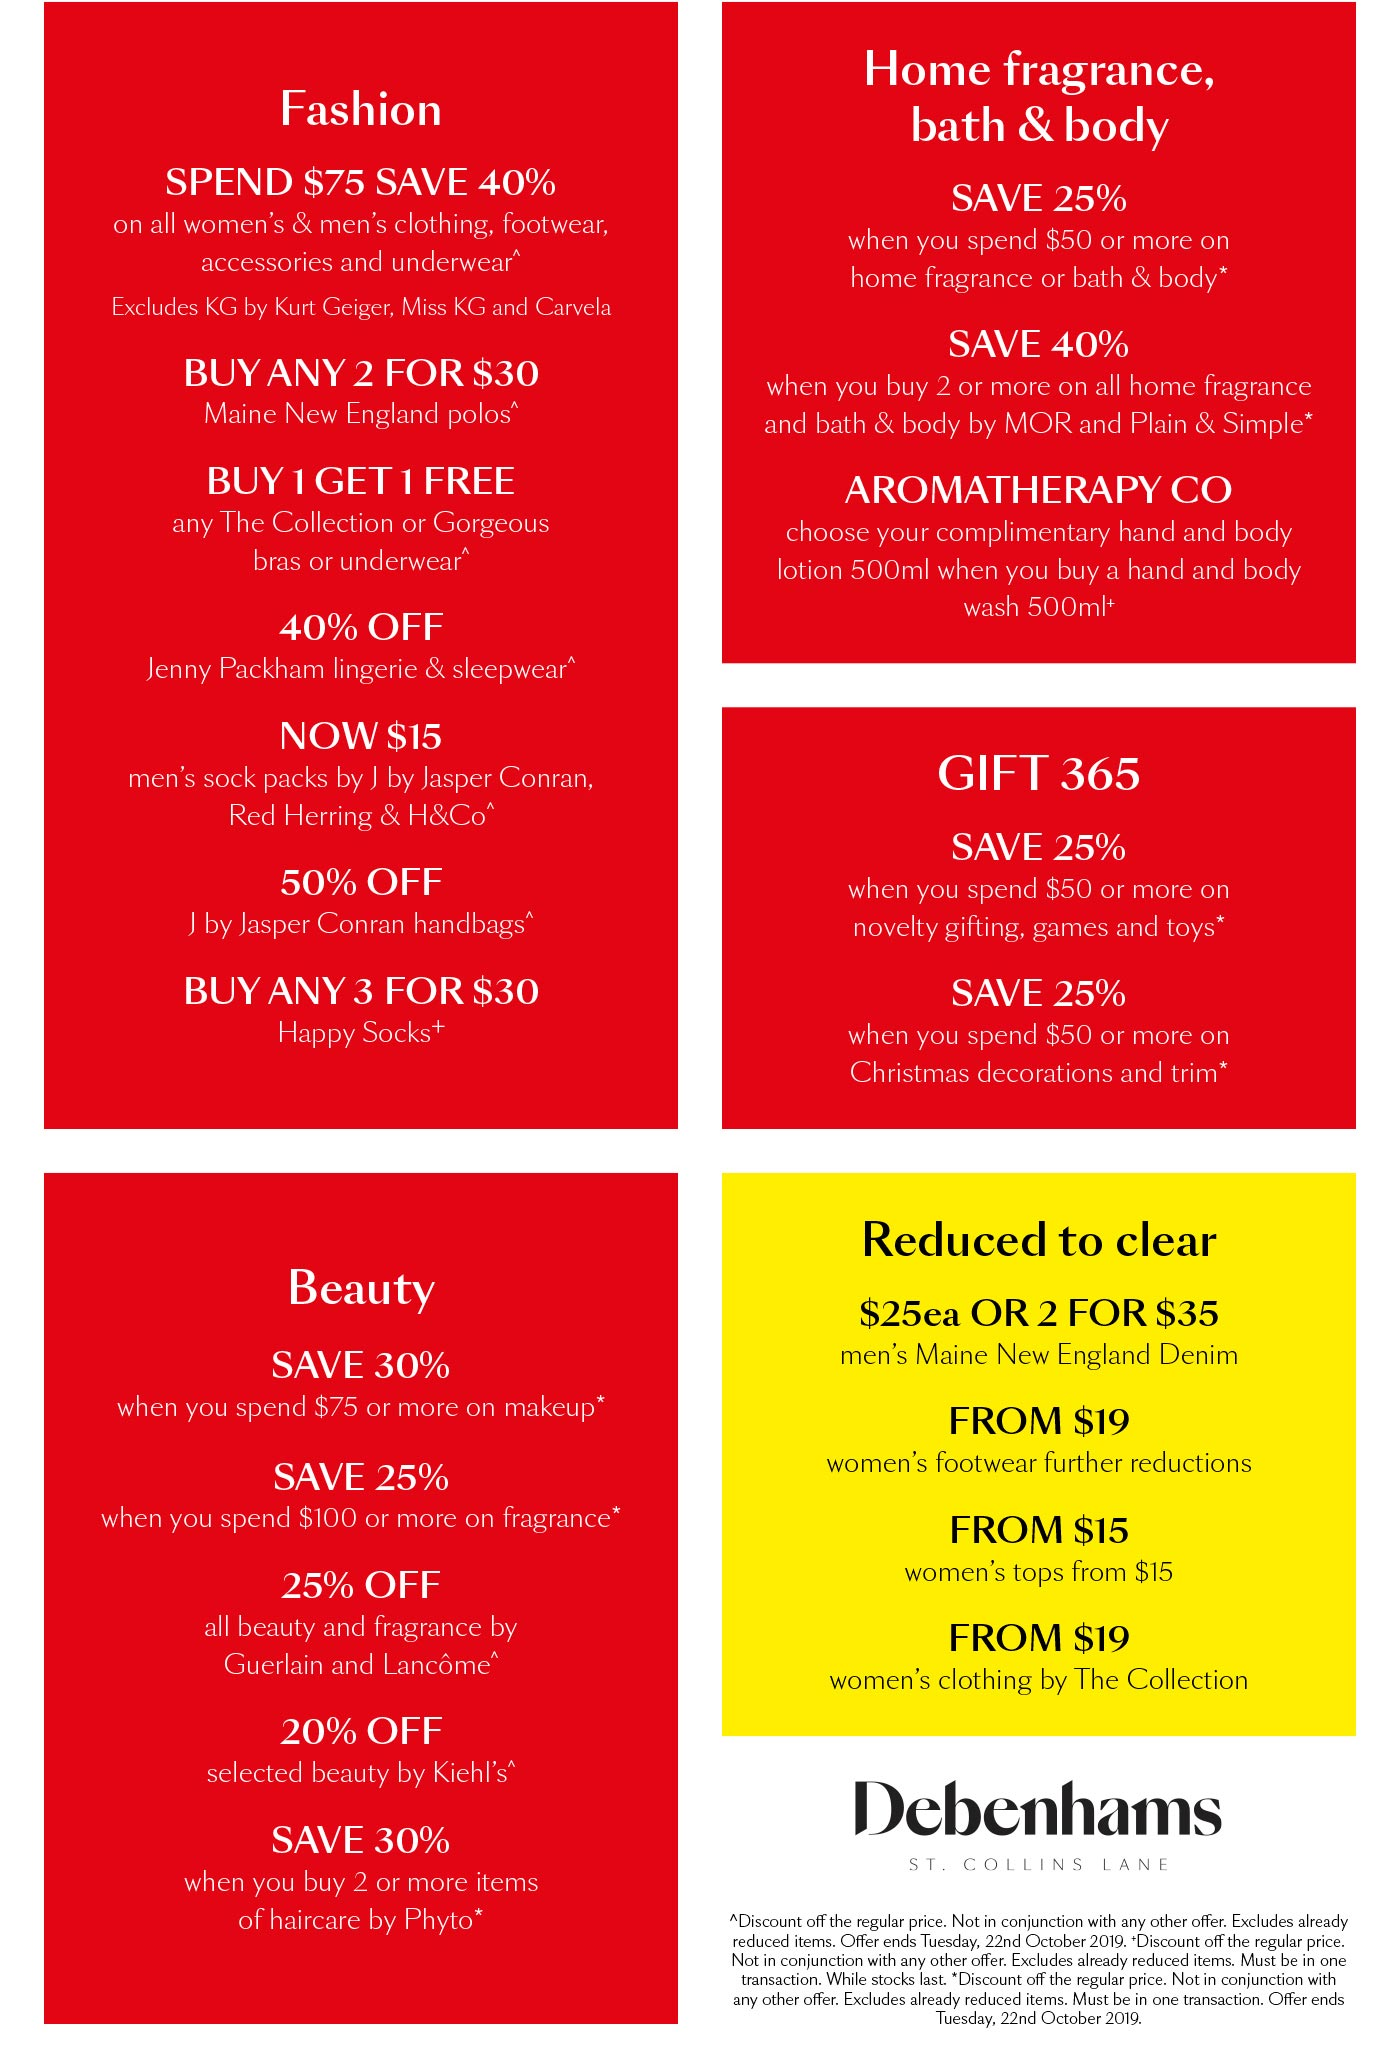 SALE NOW ON! View all offers here